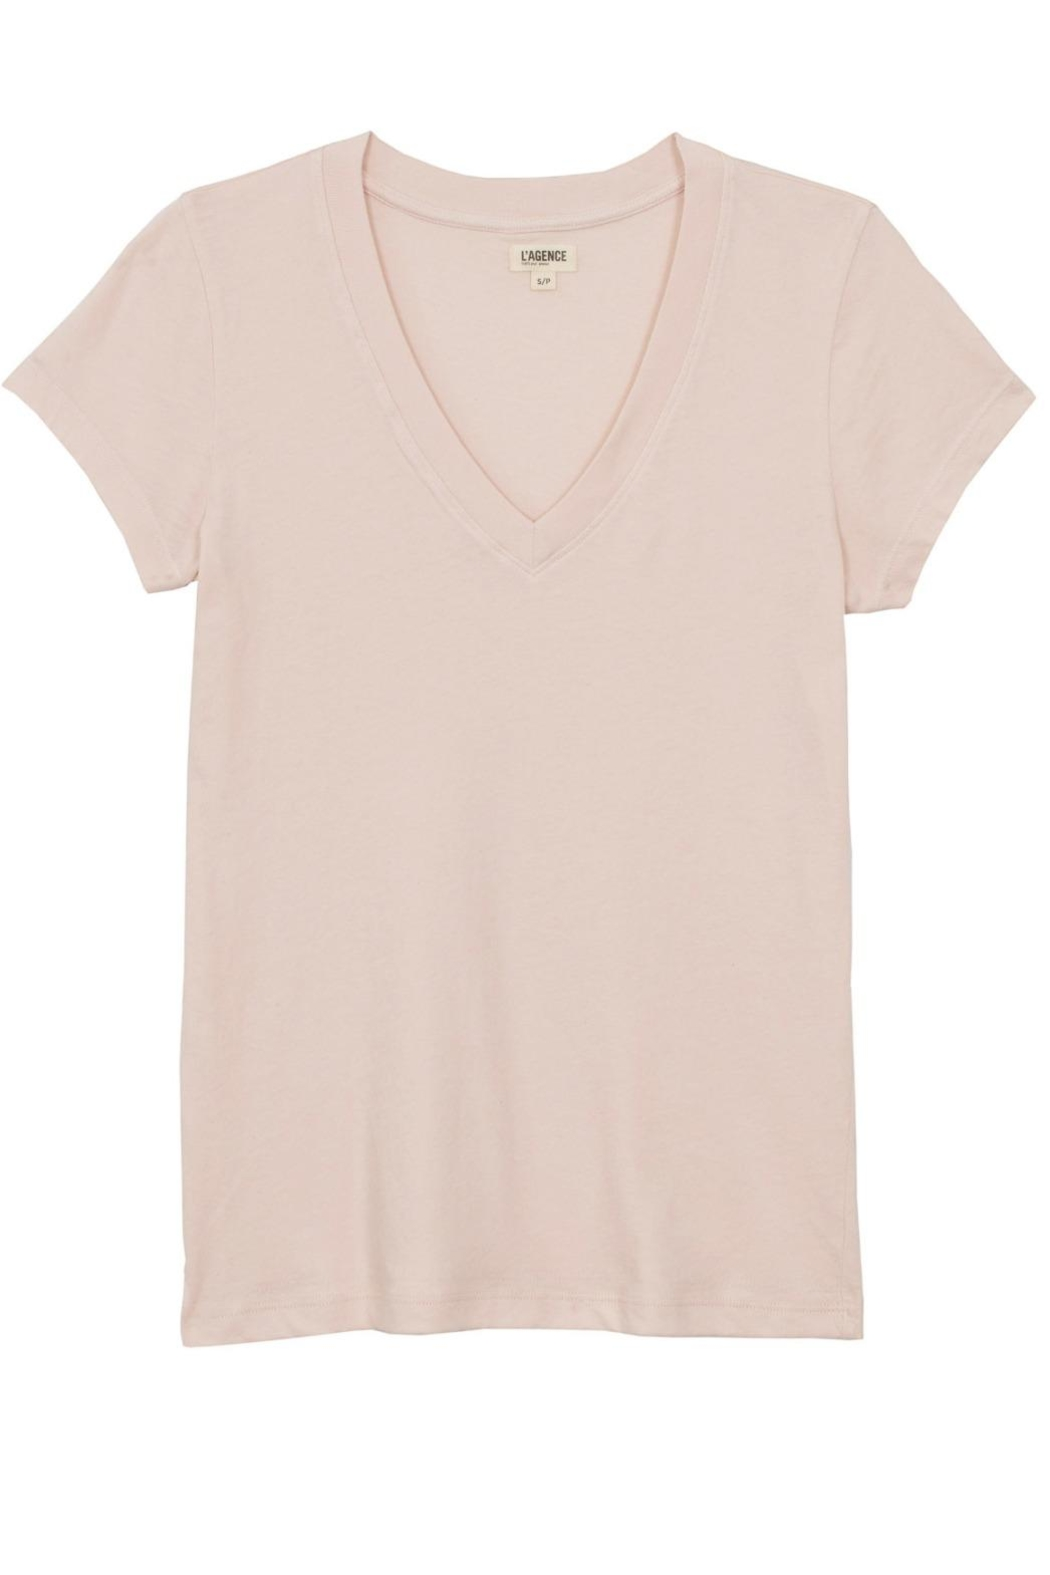 L'Agence Becca Tee - Front Full Image